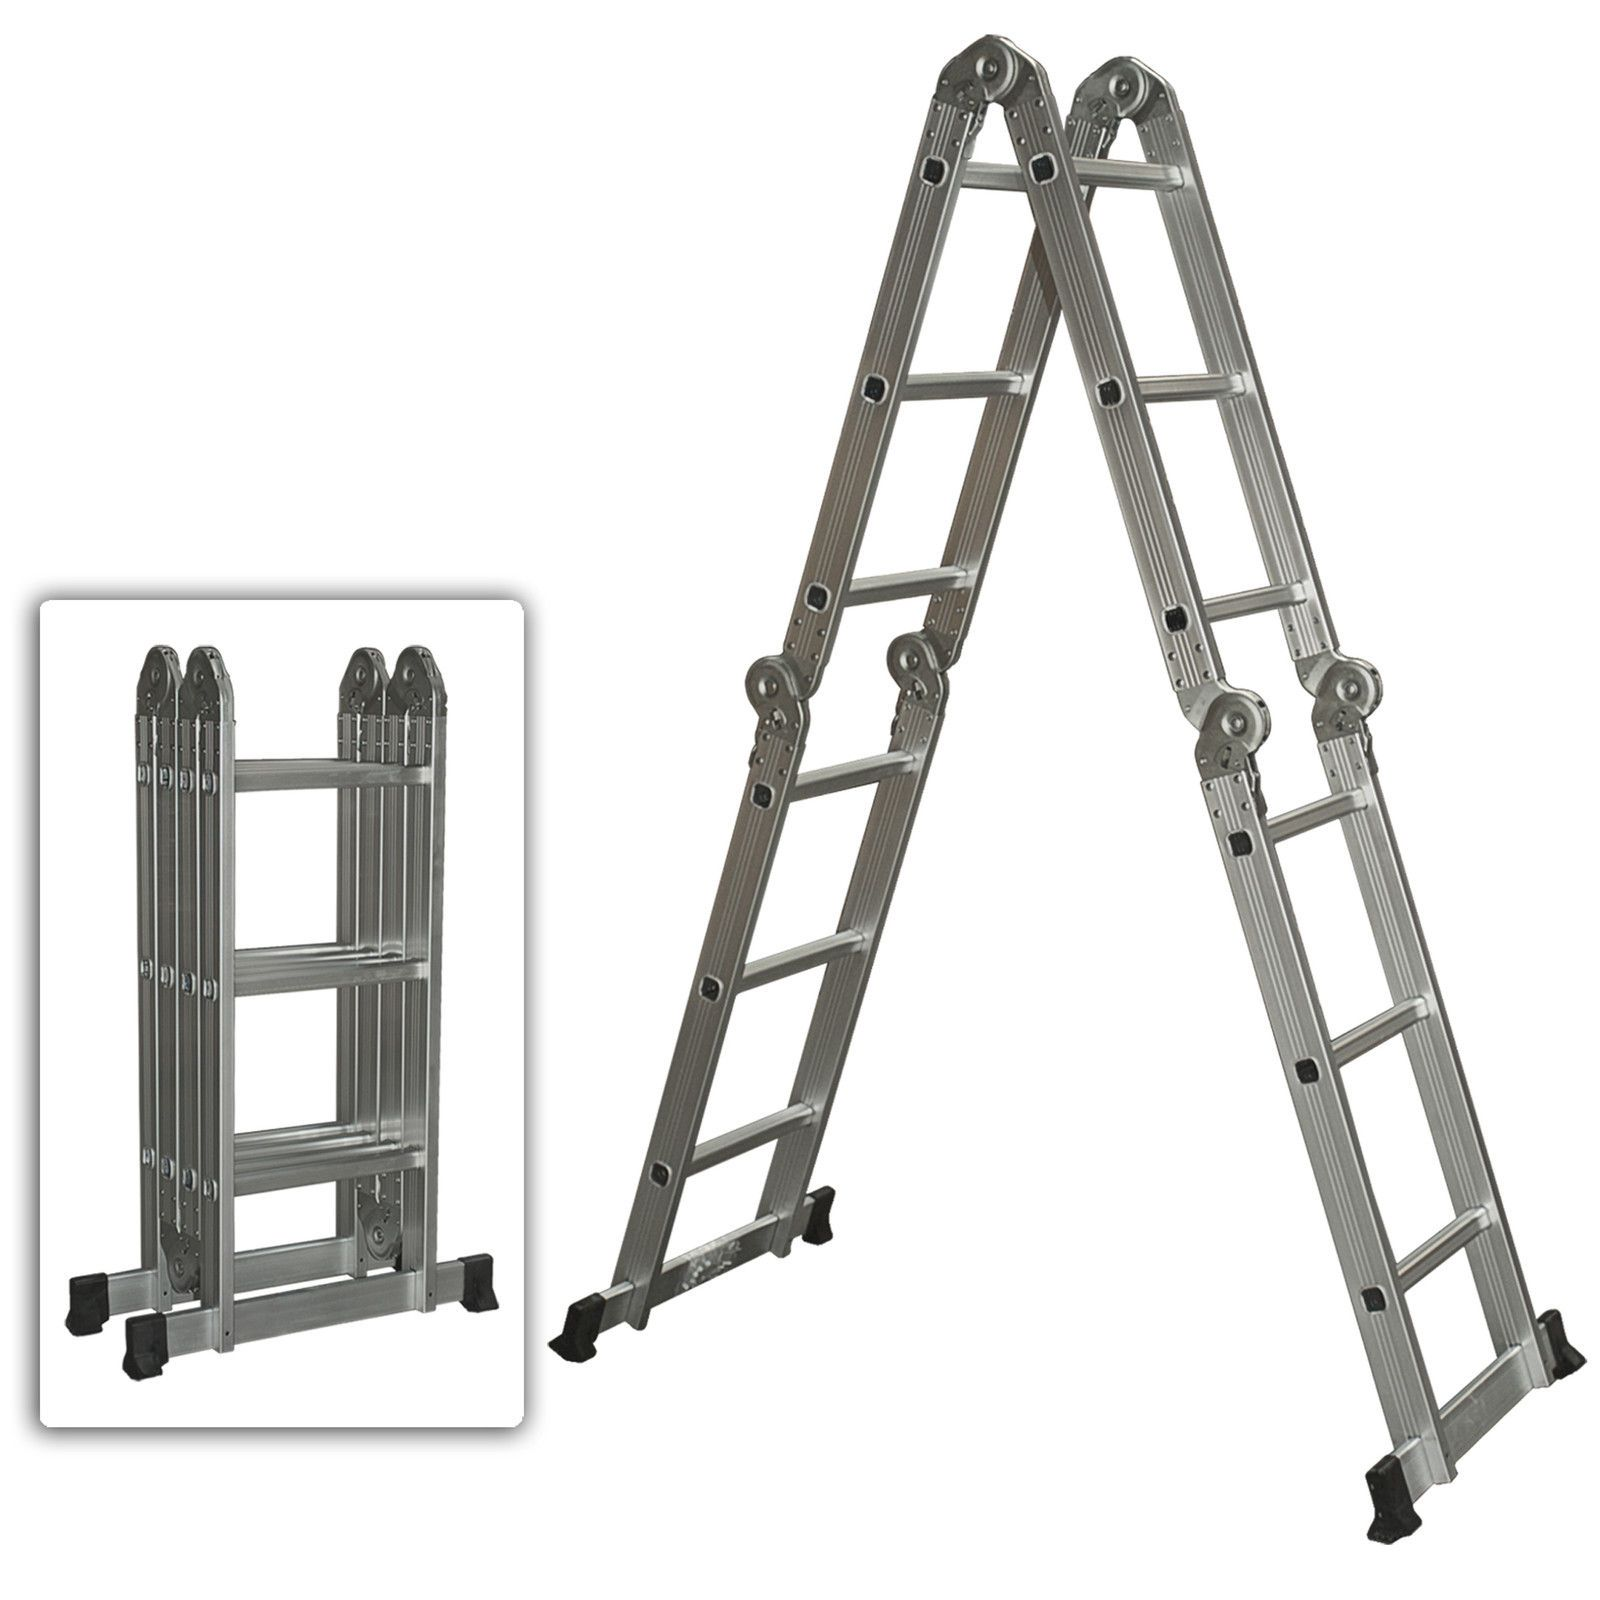 Multi Purpose Aluminum Ladder Folding Step Ladder Extendable Heavy Duty Aluminium Ladder Folding Ladder Step Ladders